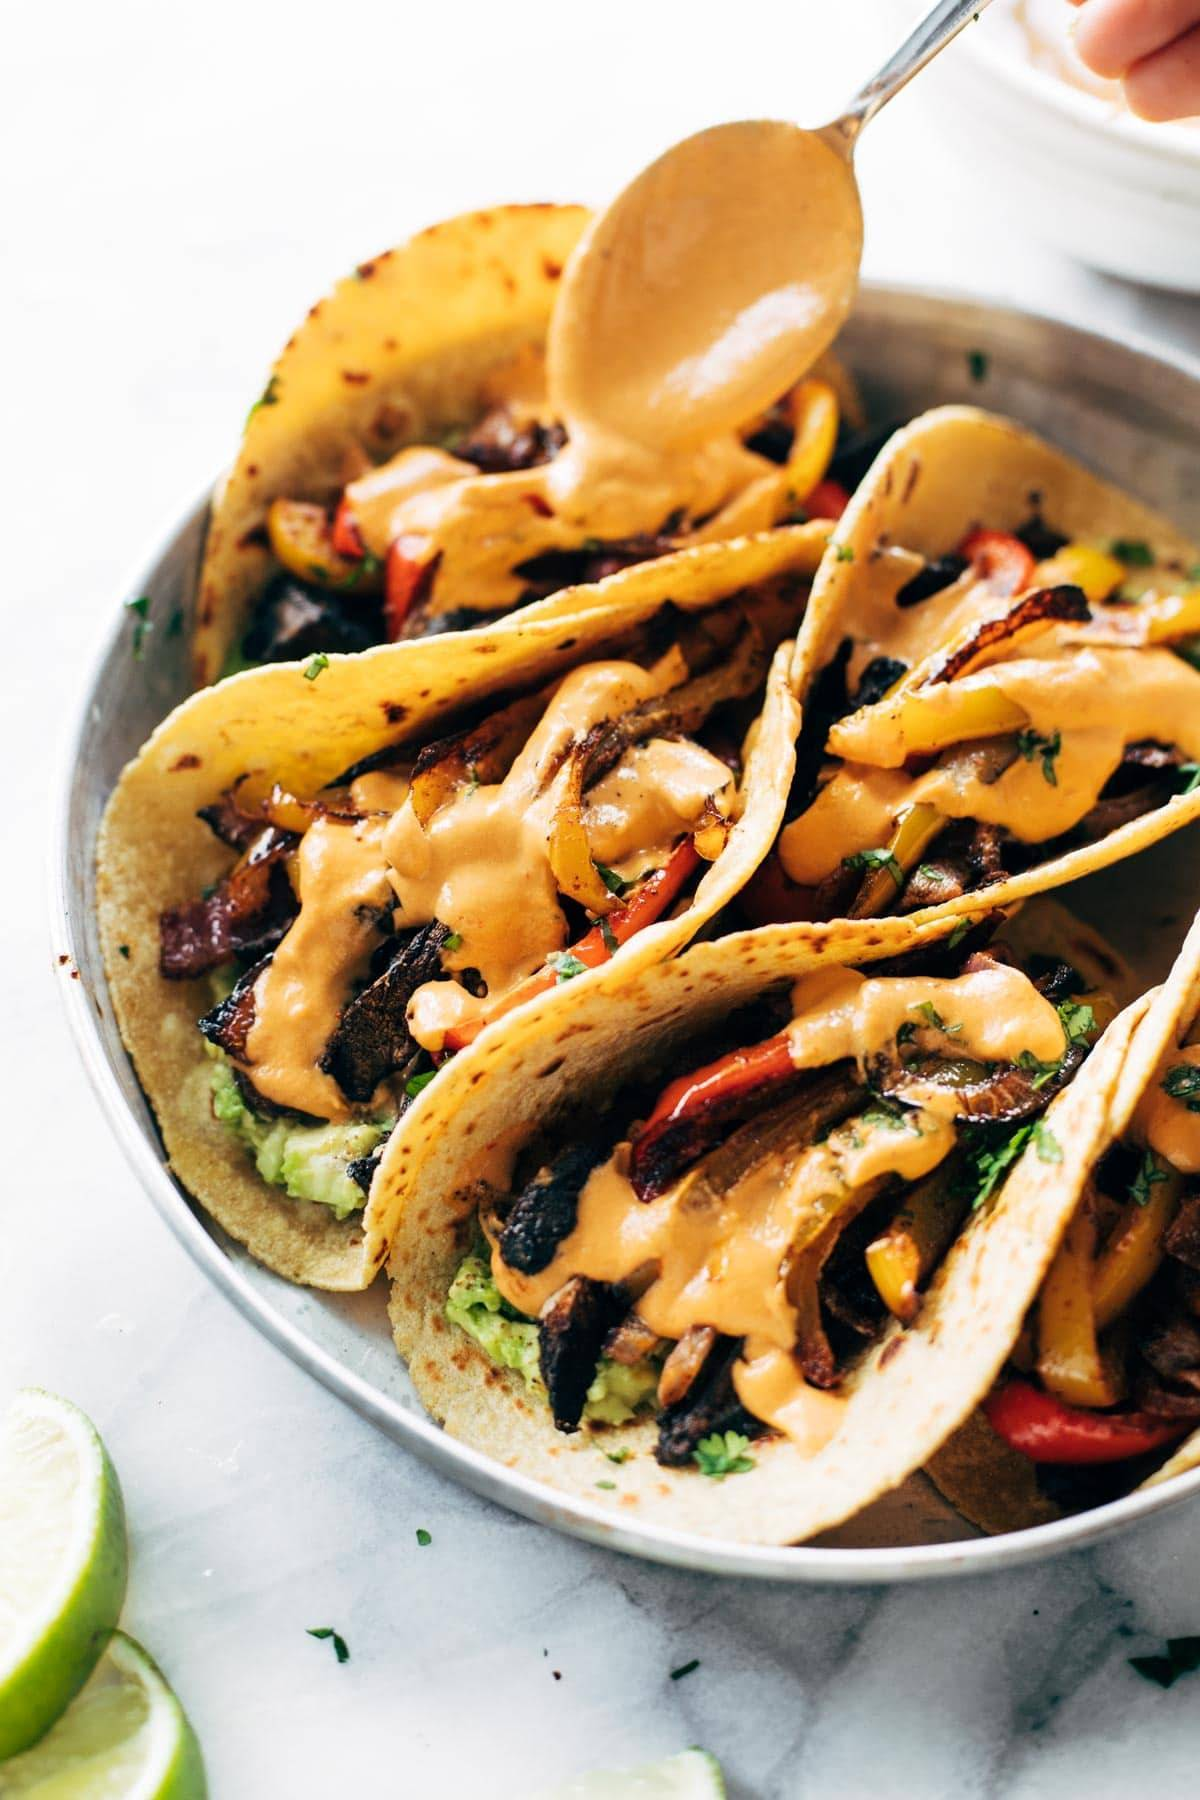 A plate of fajitas and with queso.